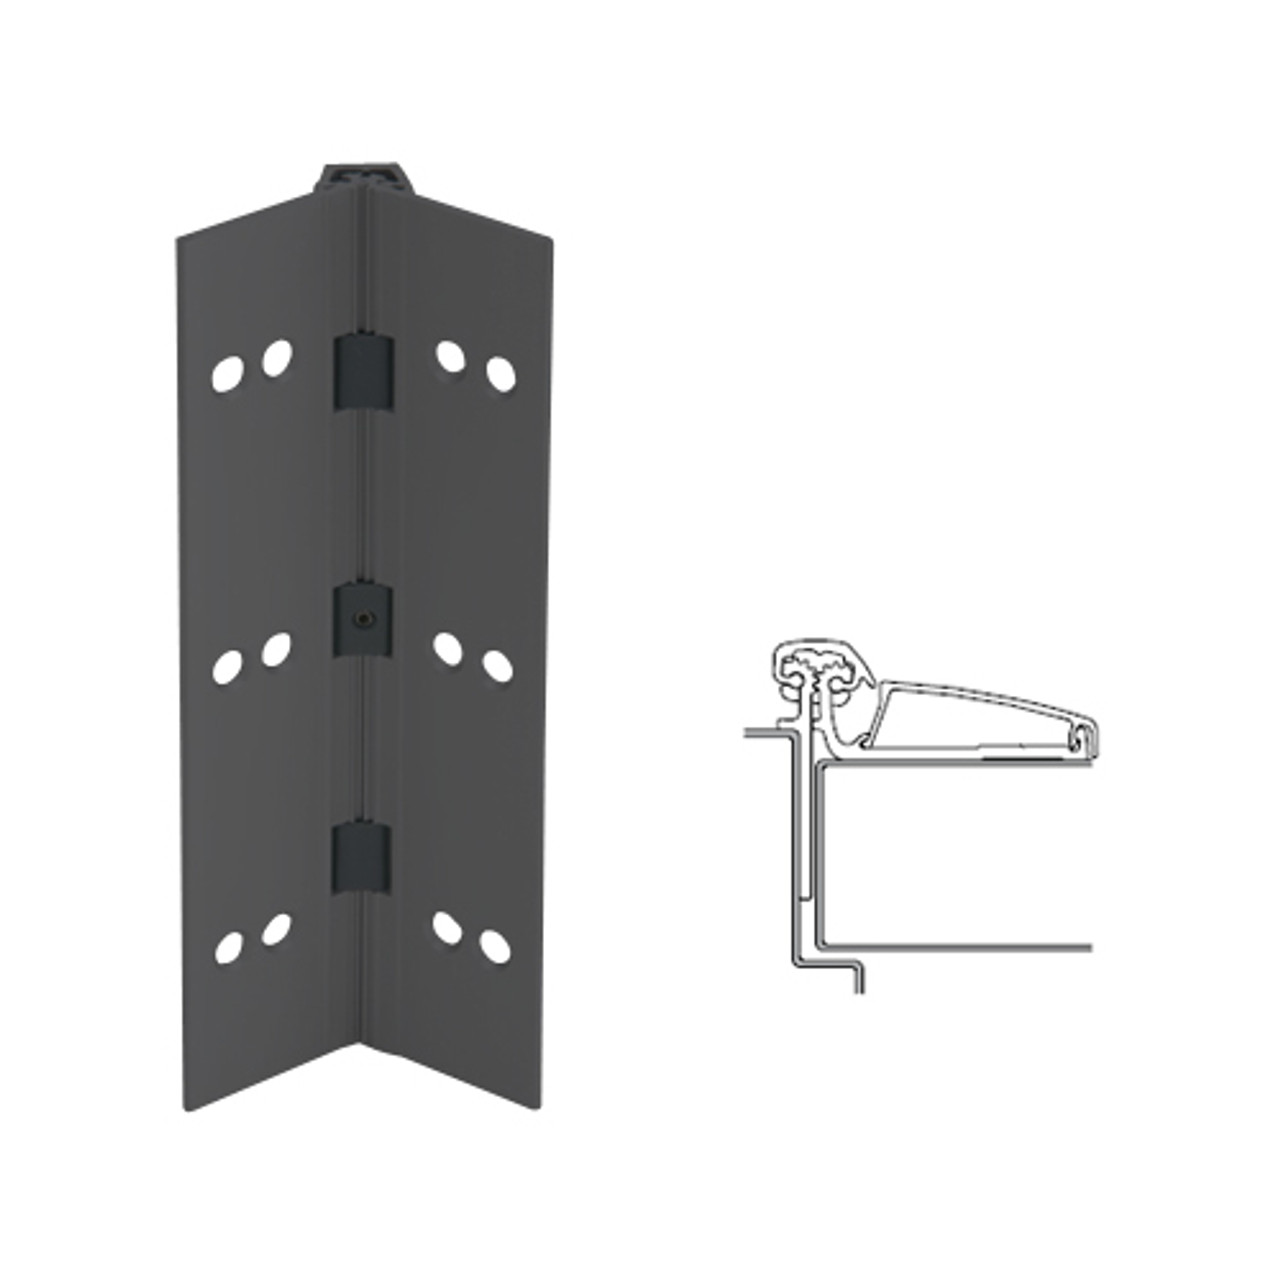 045XY-315AN-85-TFWD IVES Adjustable Half Surface Continuous Geared Hinges with Thread Forming Screws in Anodized Black